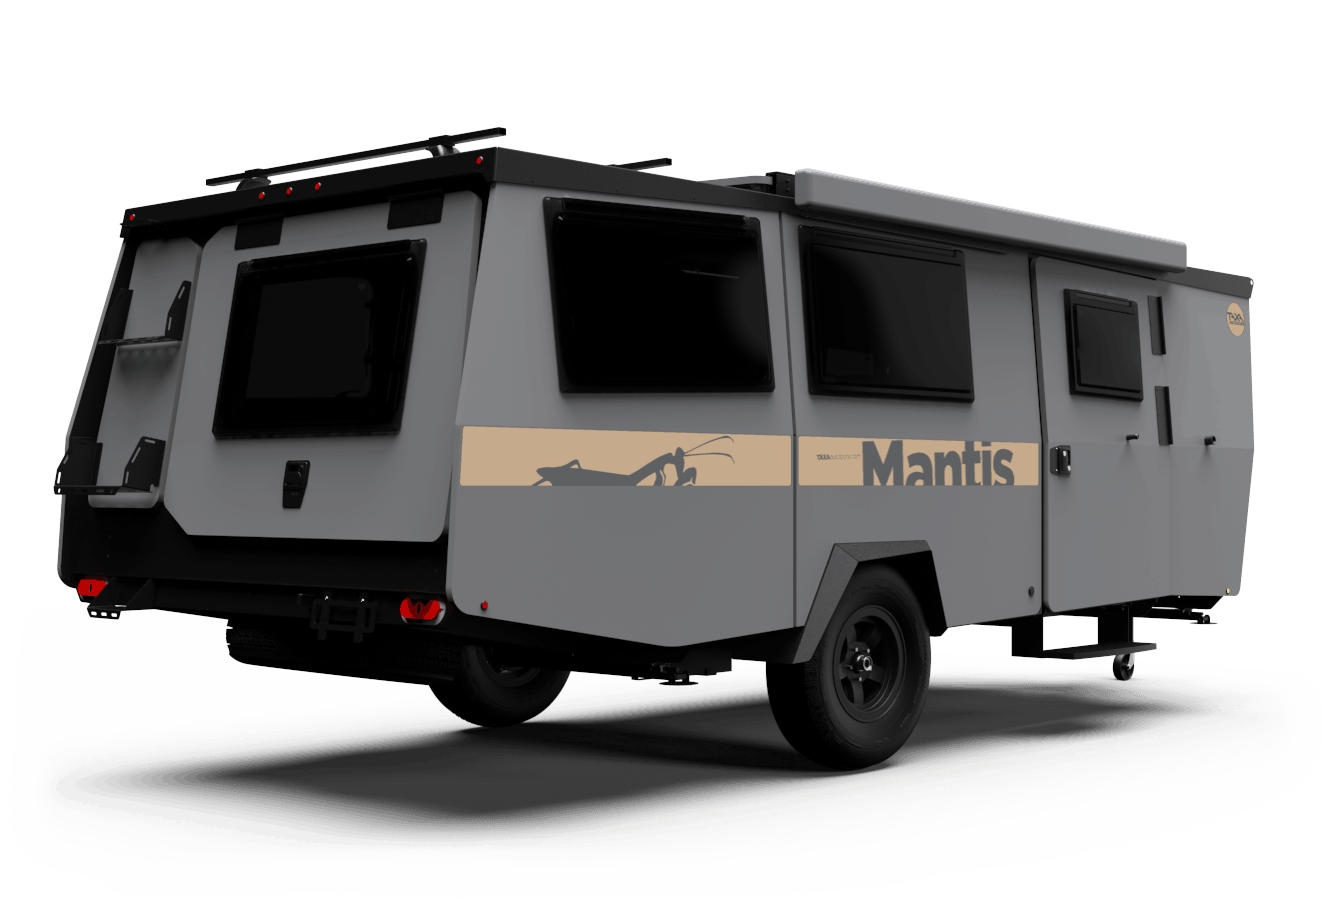 2020 TAXA Mantis: Space to roam.